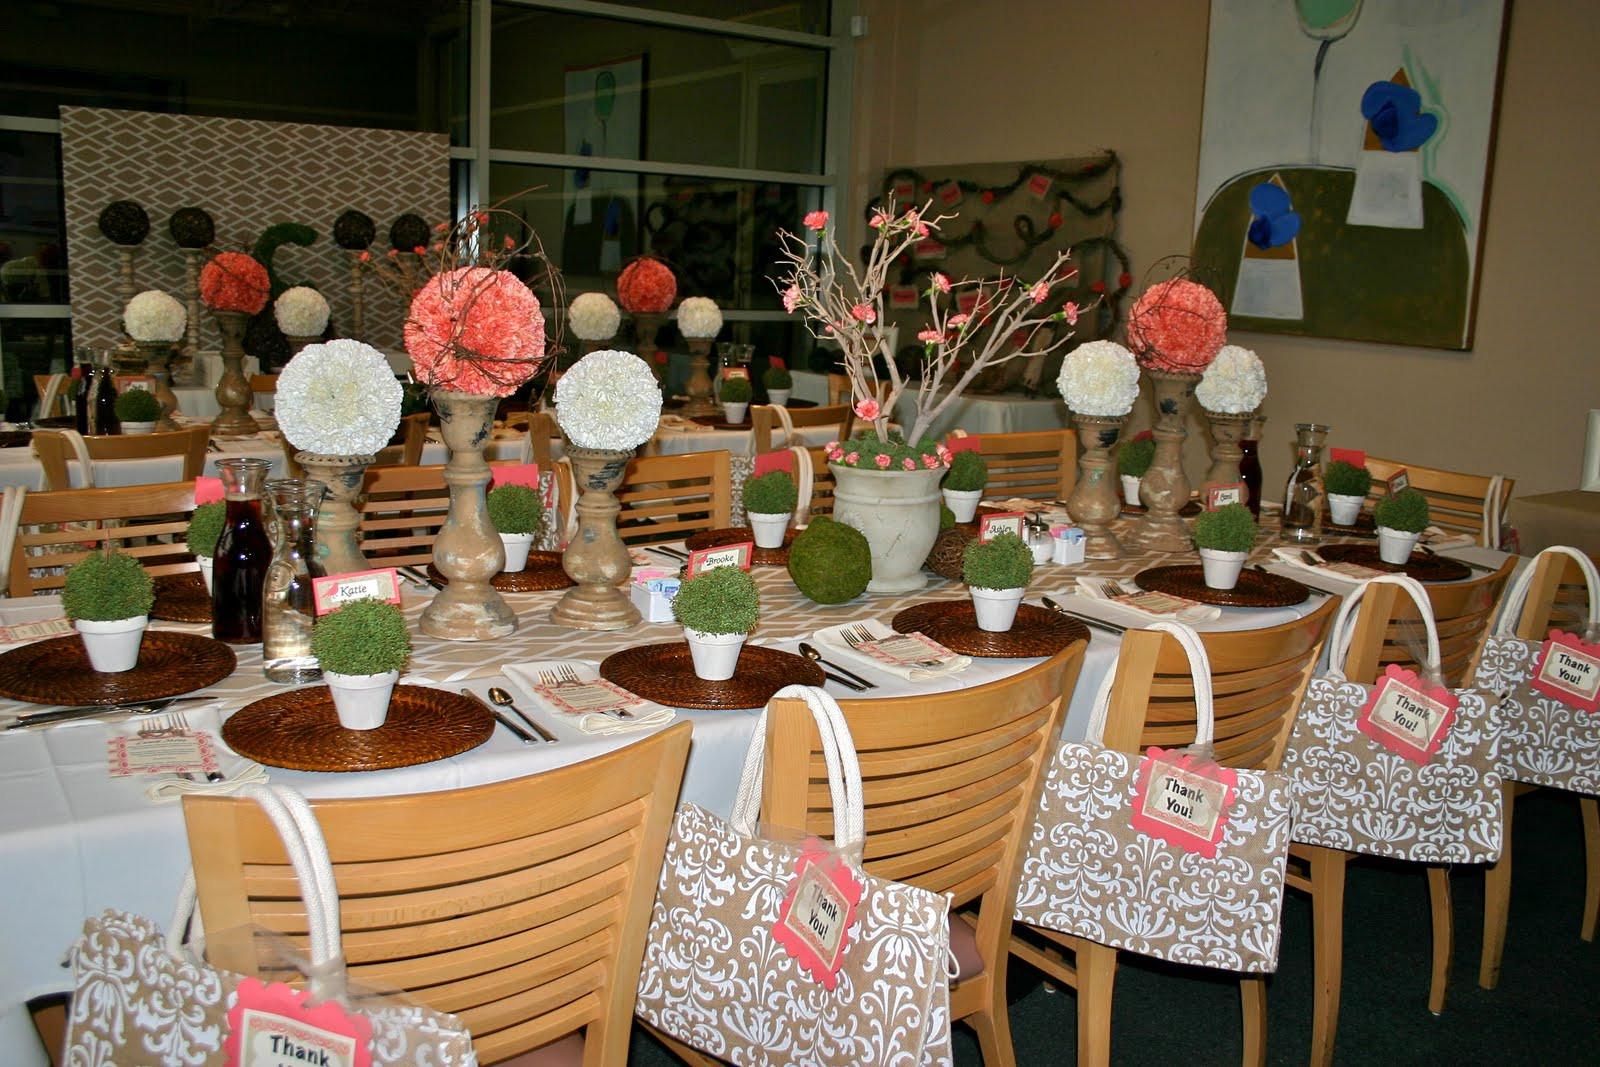 Best ideas about Table Decoration Ideas For Birthday Party . Save or Pin 35 Birthday Table Decorations Ideas for Adults Now.